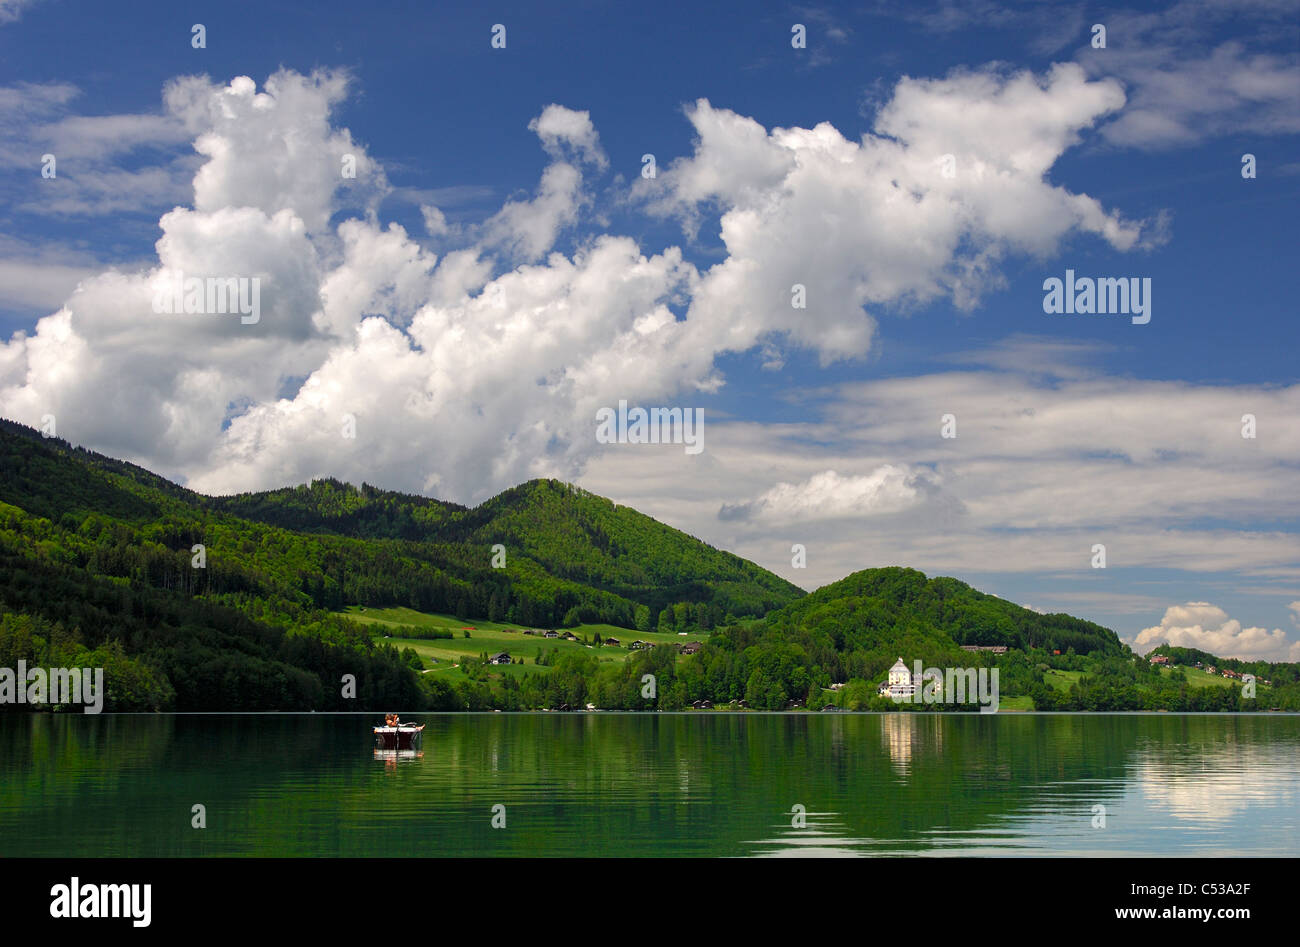 Lake Fuschlsee with the castle Fuschl in the Salzkammergut region near Salzburg, Austria - Stock Image